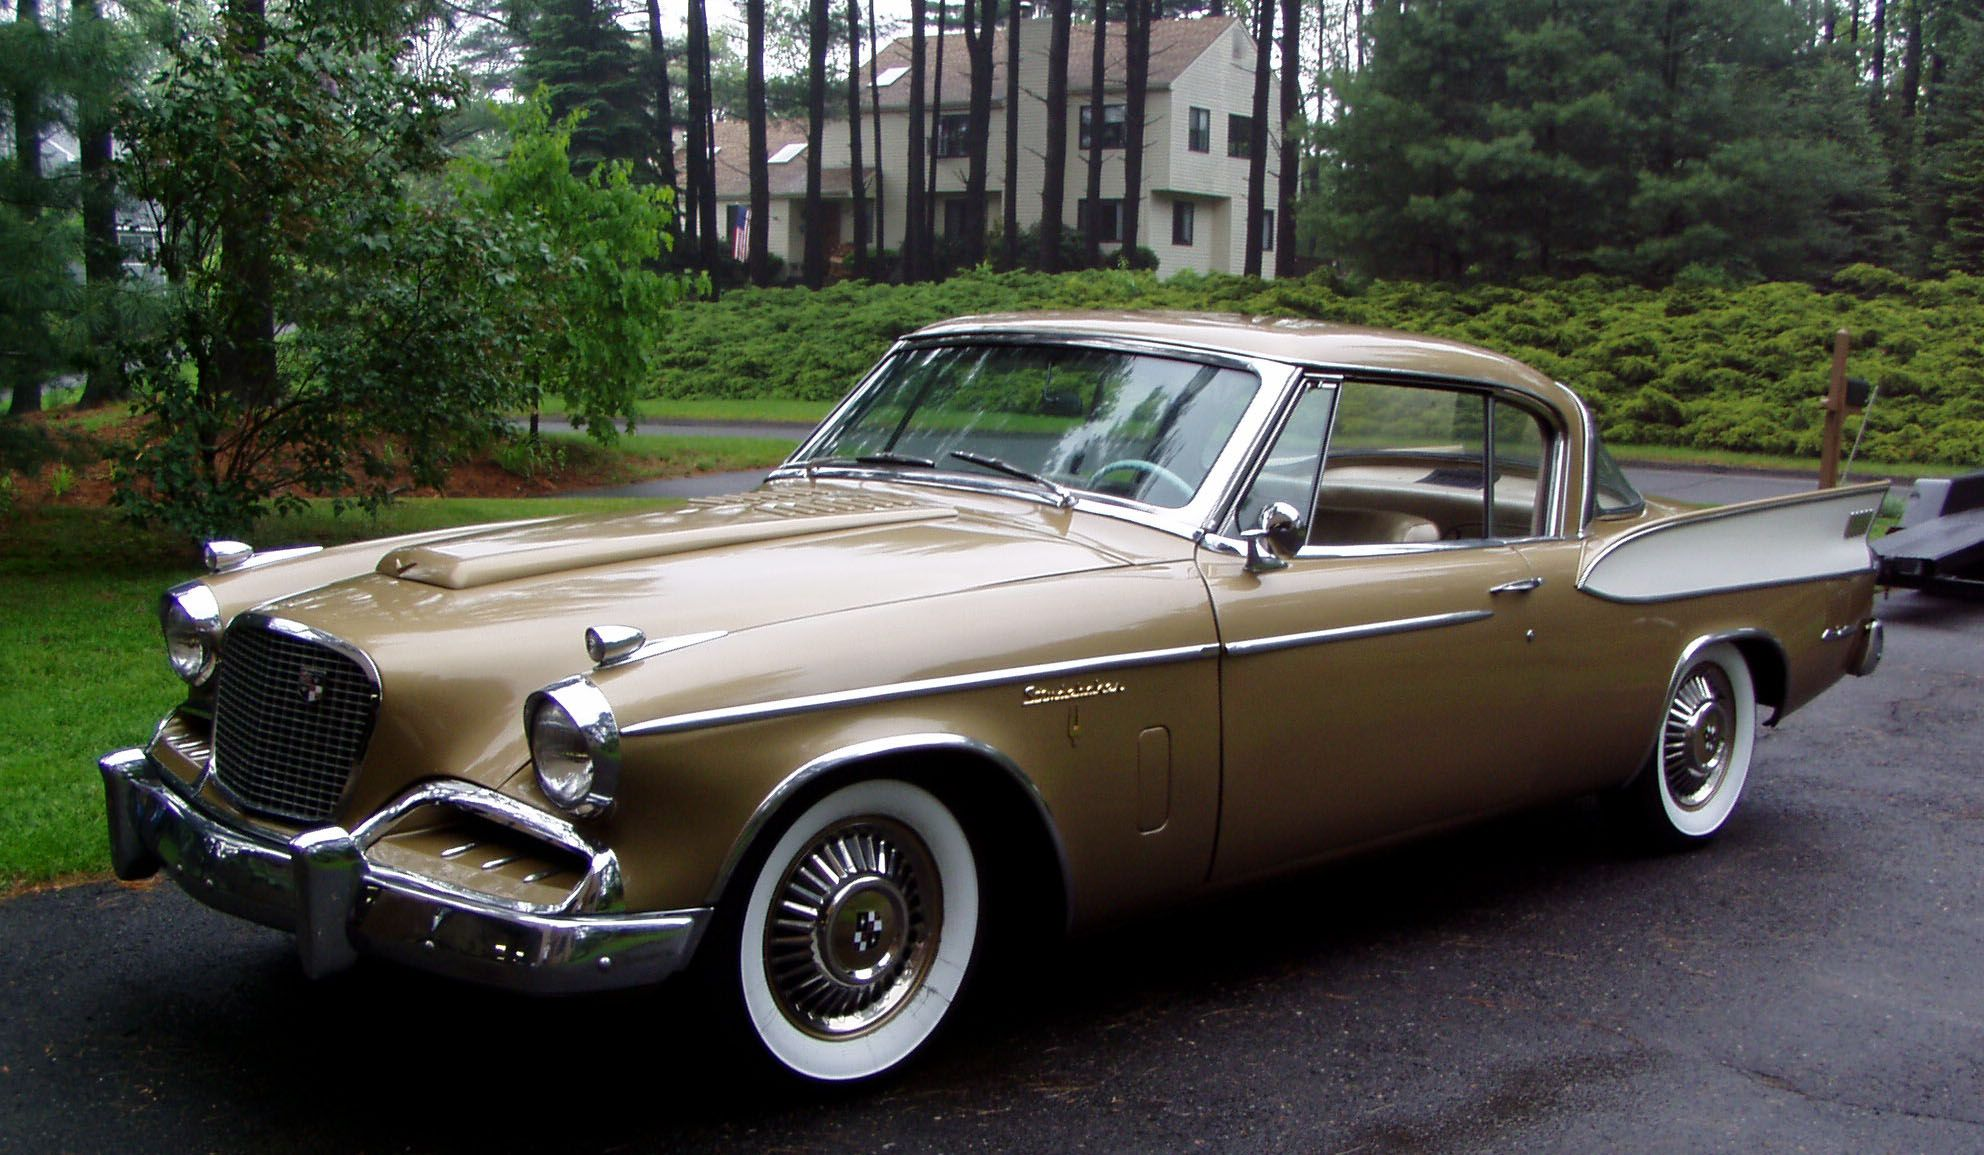 The 1957 golden hawk if anyone has one of these contact me i